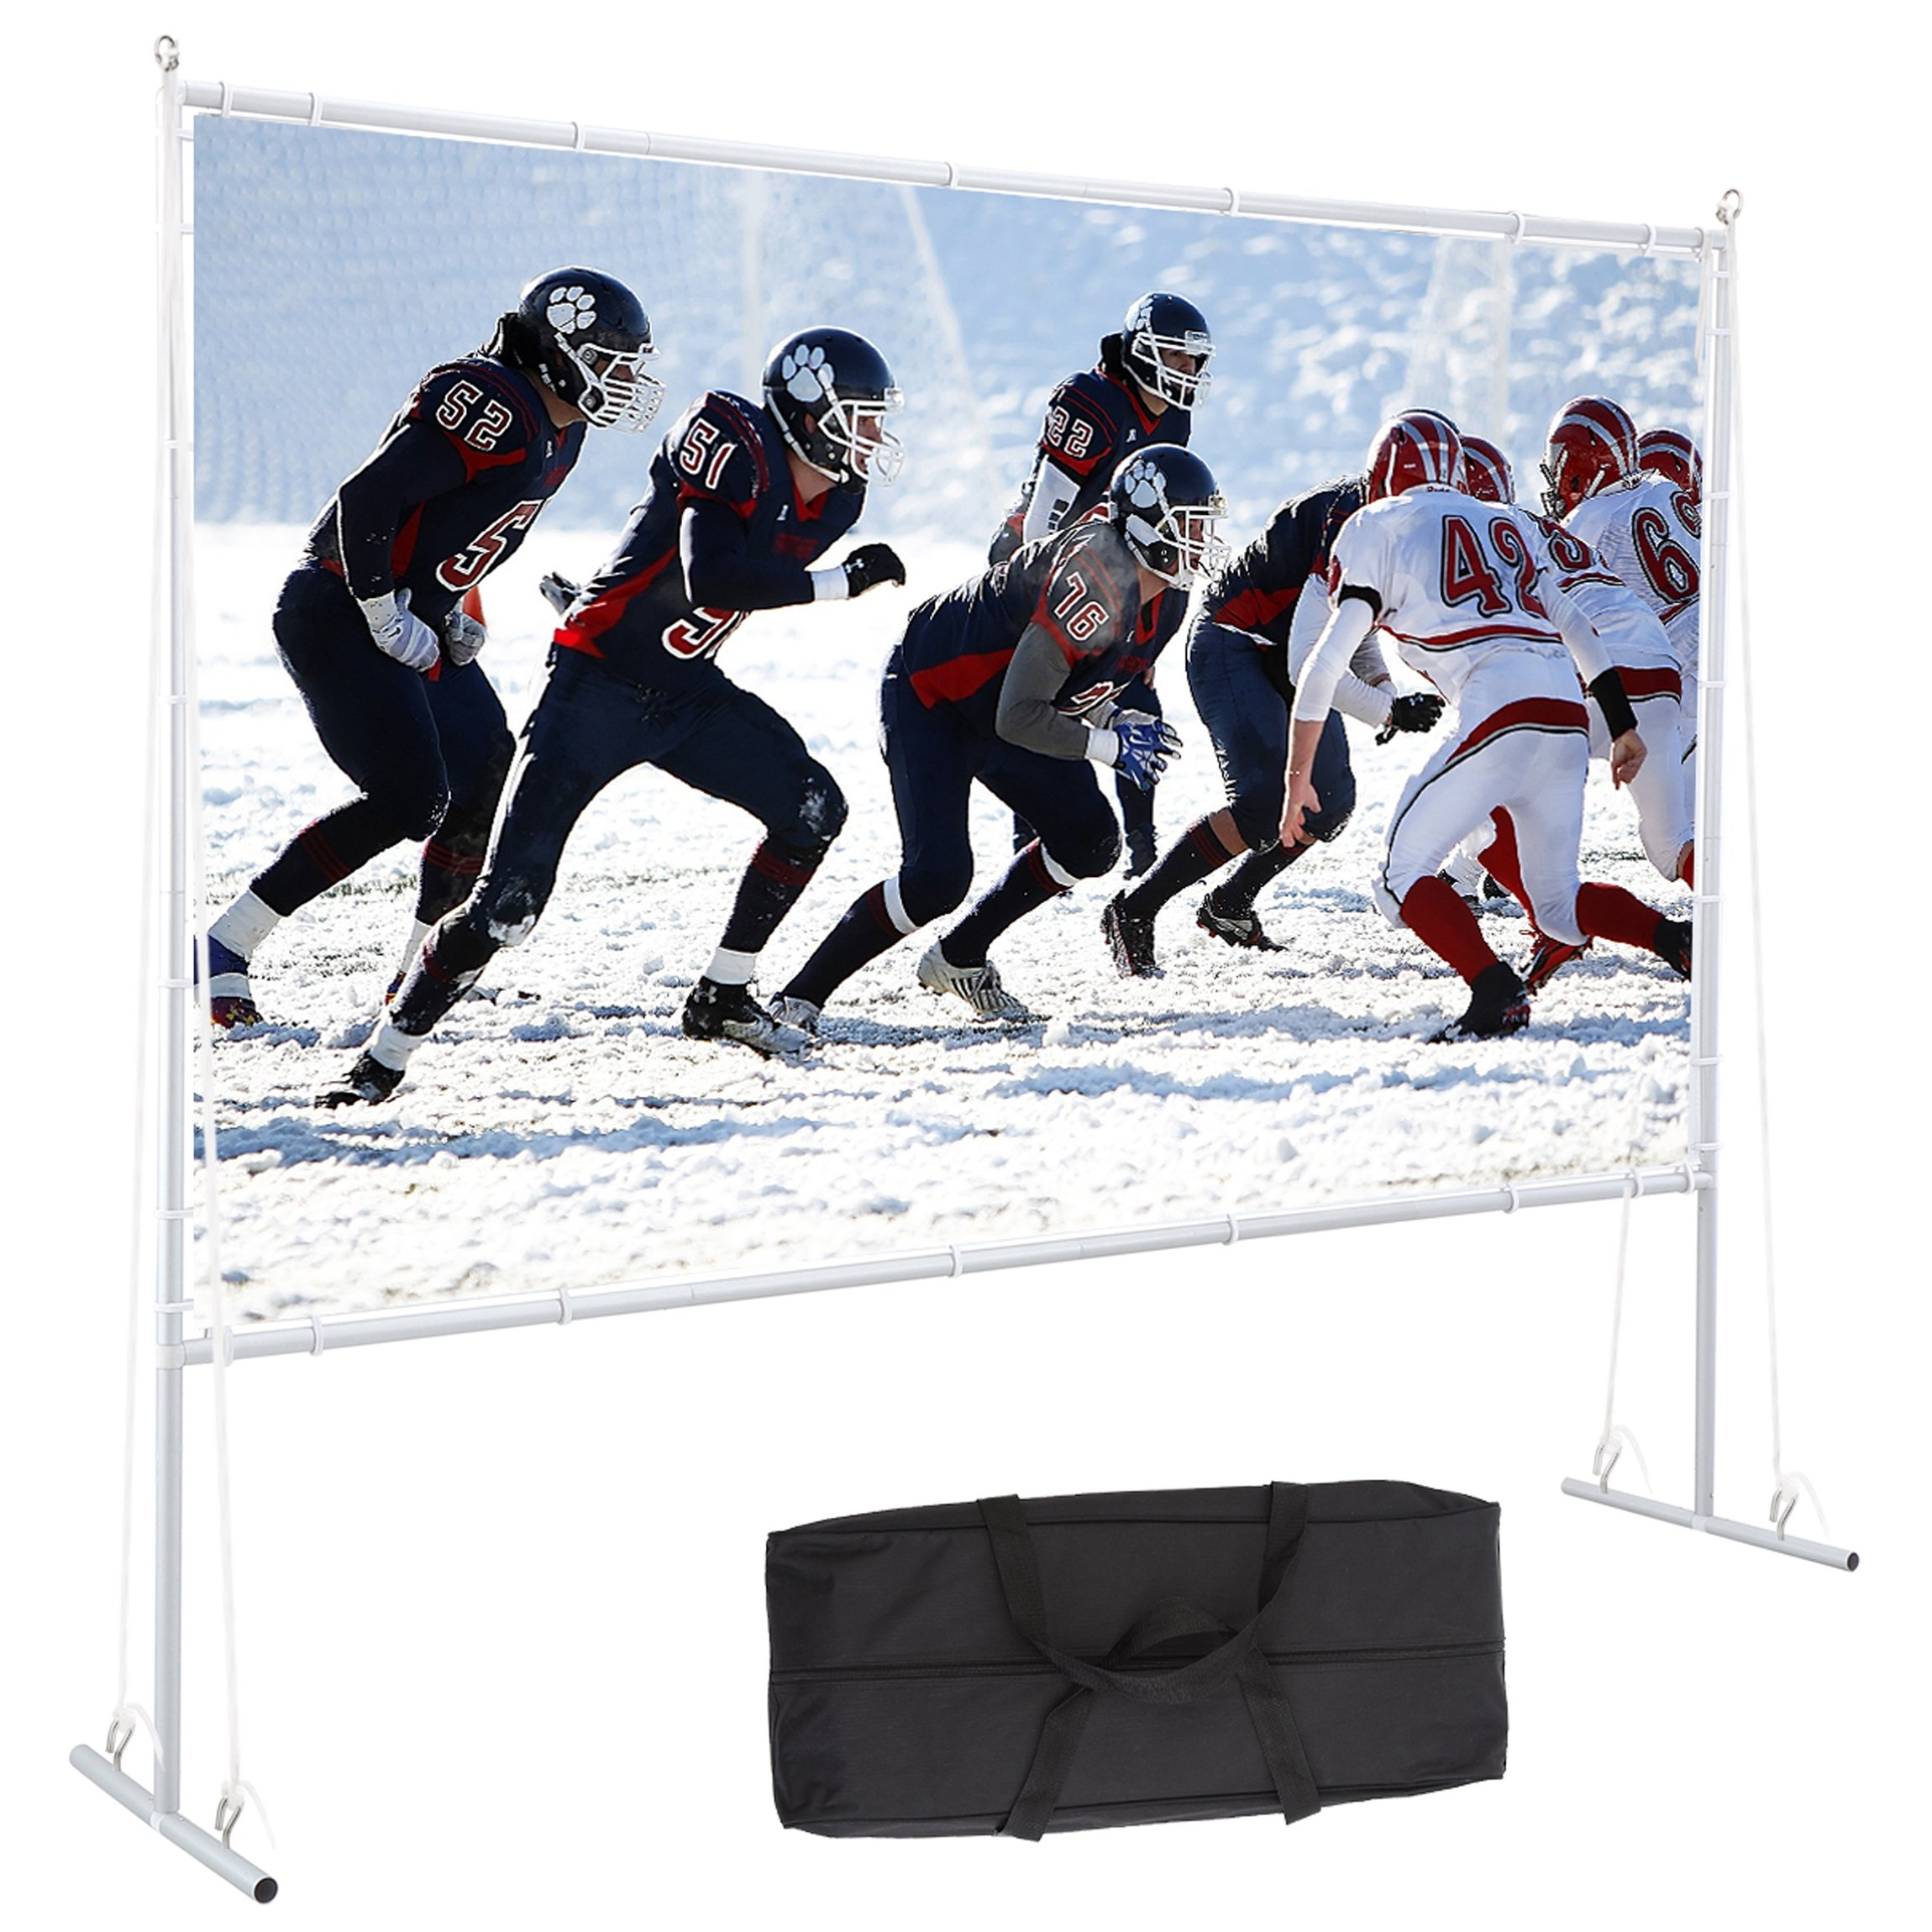 Varmax Outdoor Projector Screen with Stand 120 inch 16:9, Home Movie Screen  with Foldable PVC Fabric and Transportable Full Set Bag for Backyard